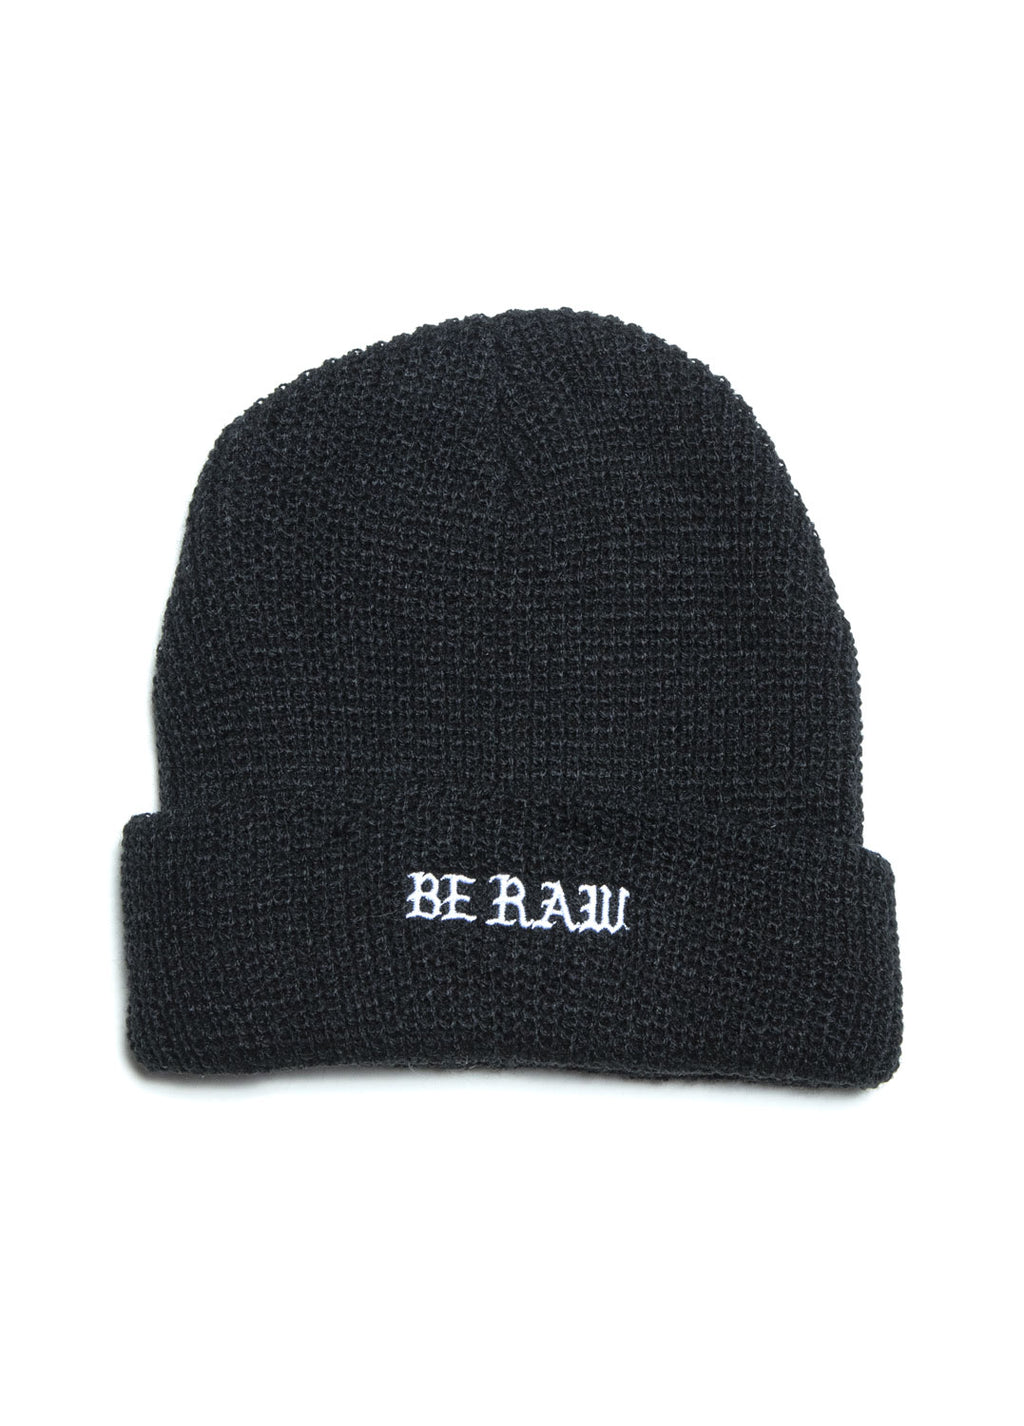 Micro Beanie - Old English  Be Raw logo